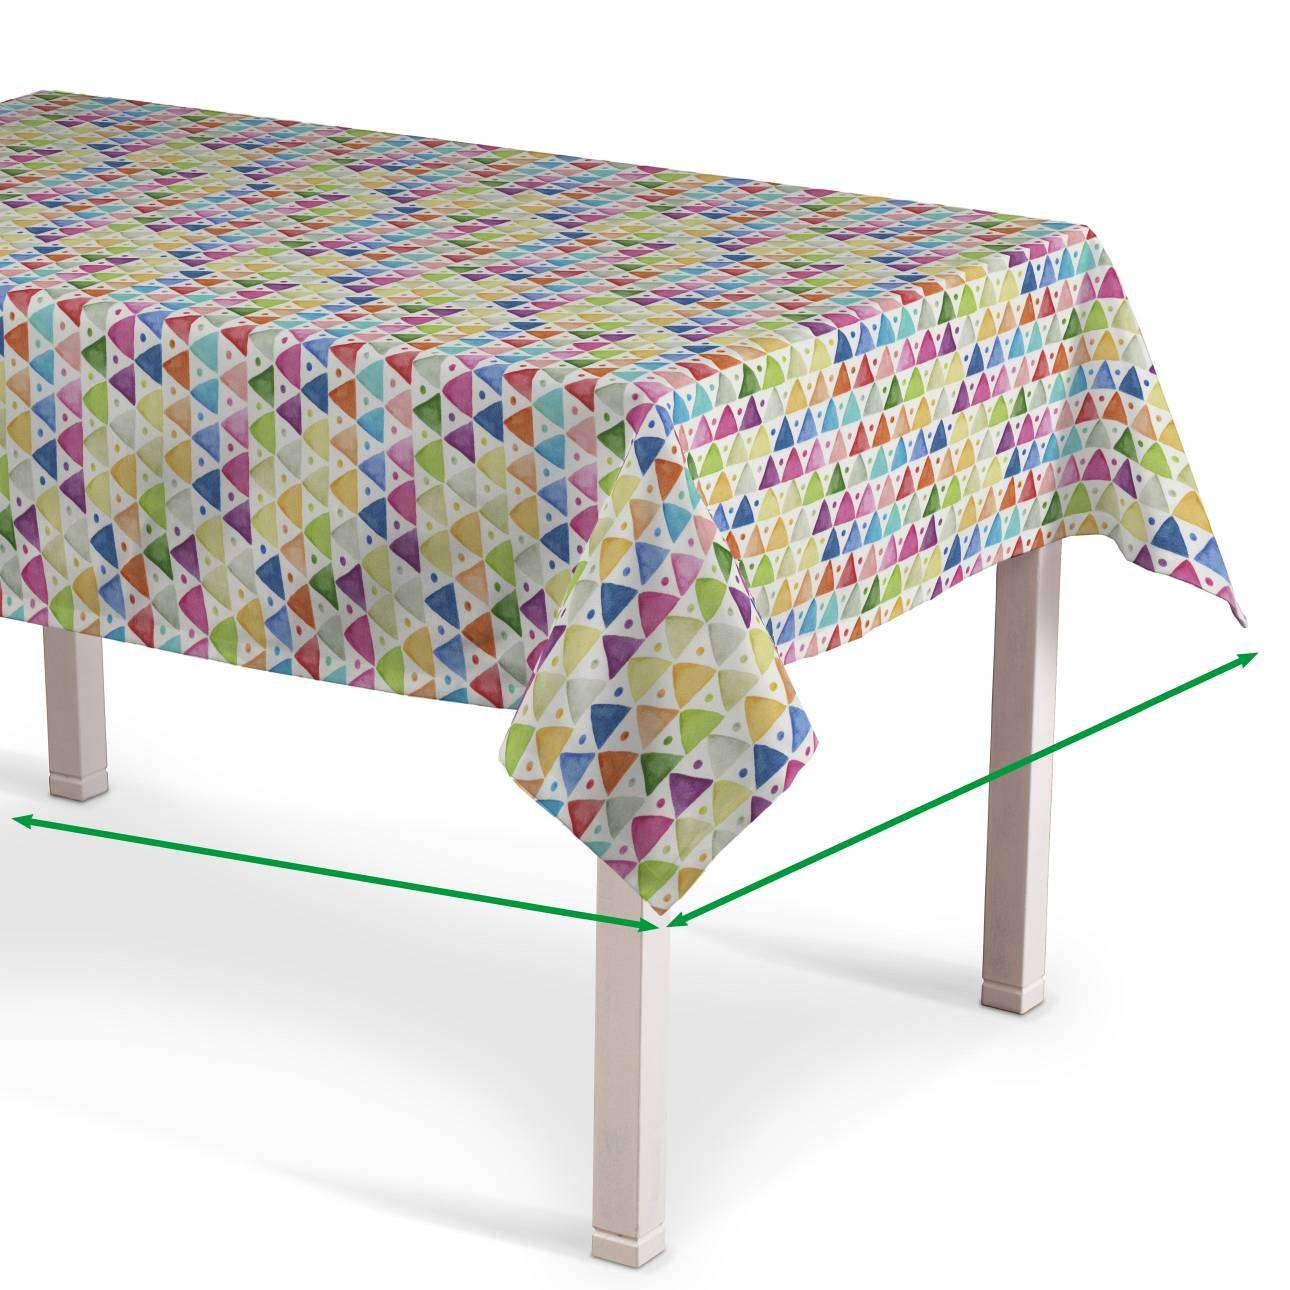 Rectangular tablecloth in collection New Art, fabric: 140-27